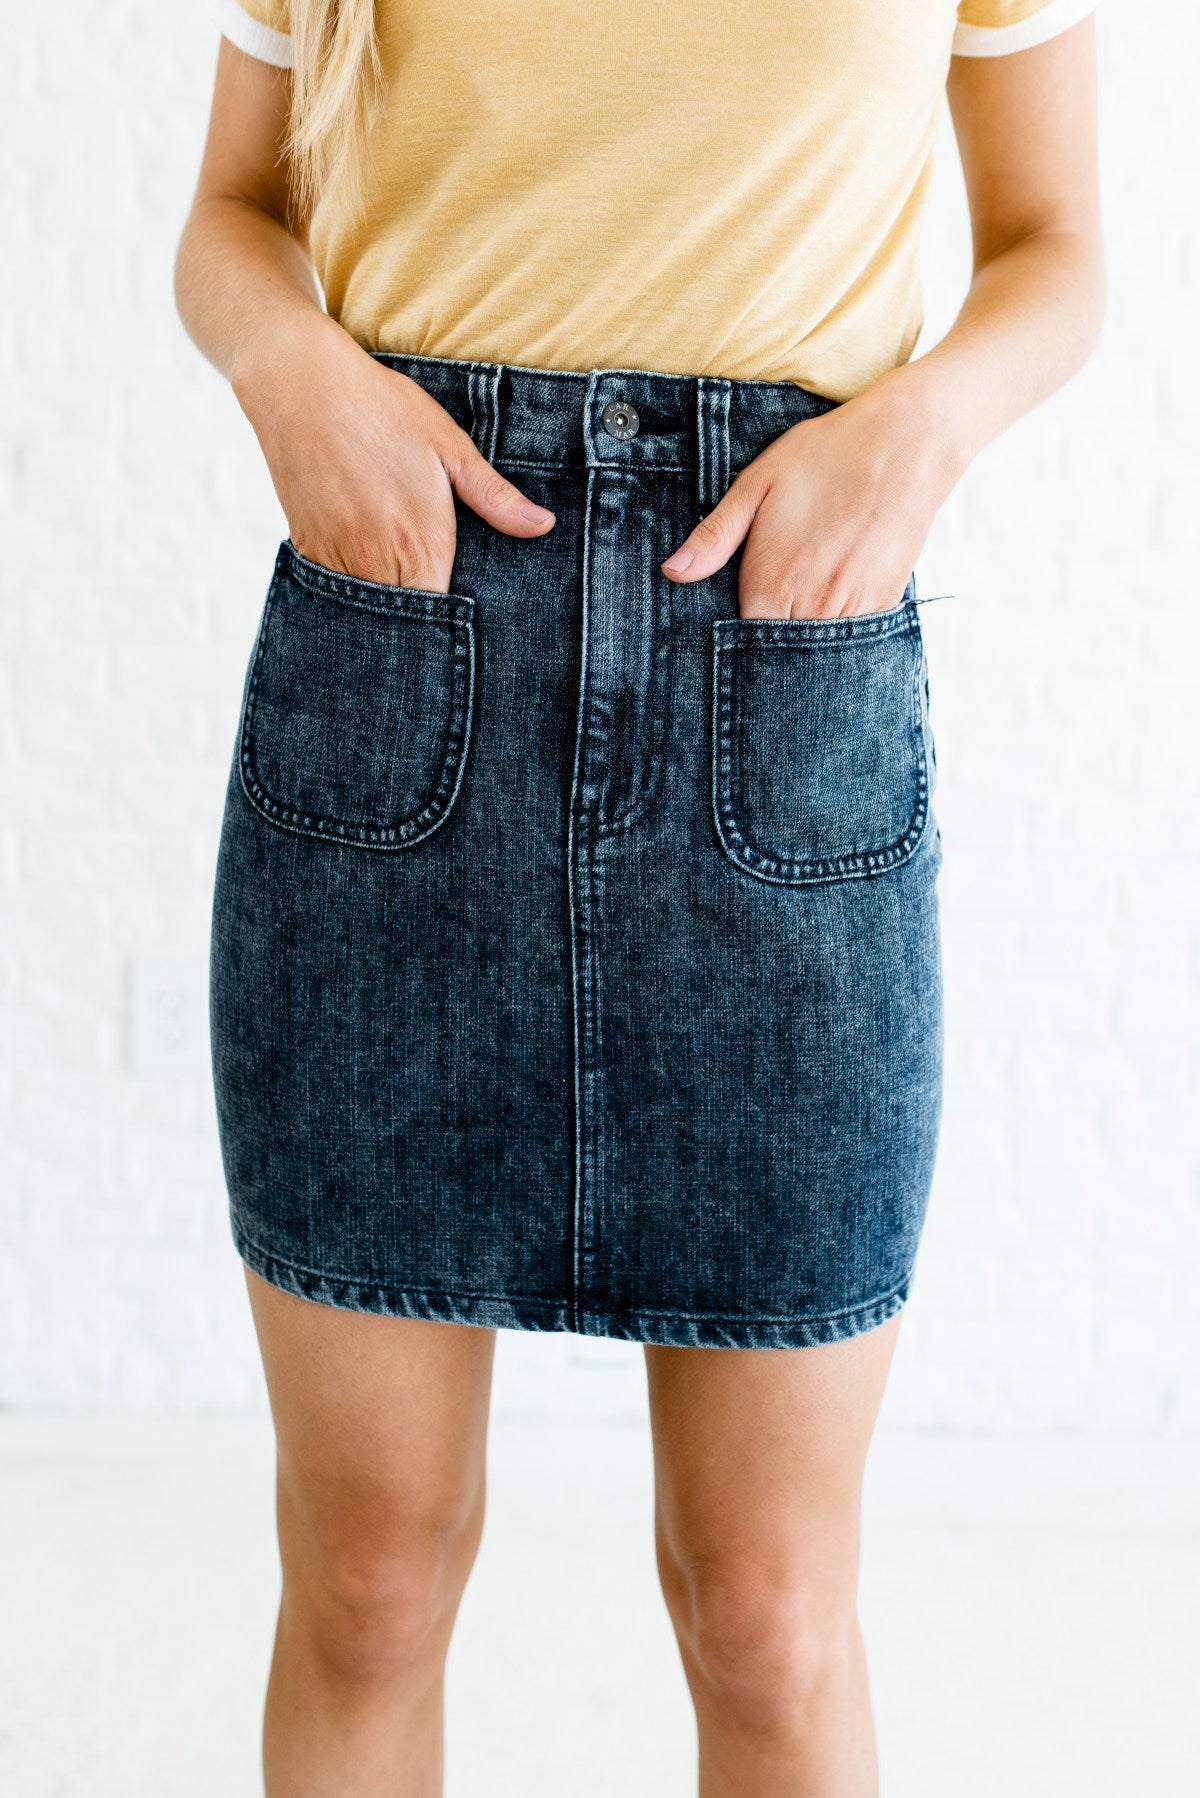 Dark Mineral Wash Blue High-Quality Denim Material Boutique Skirts for Women